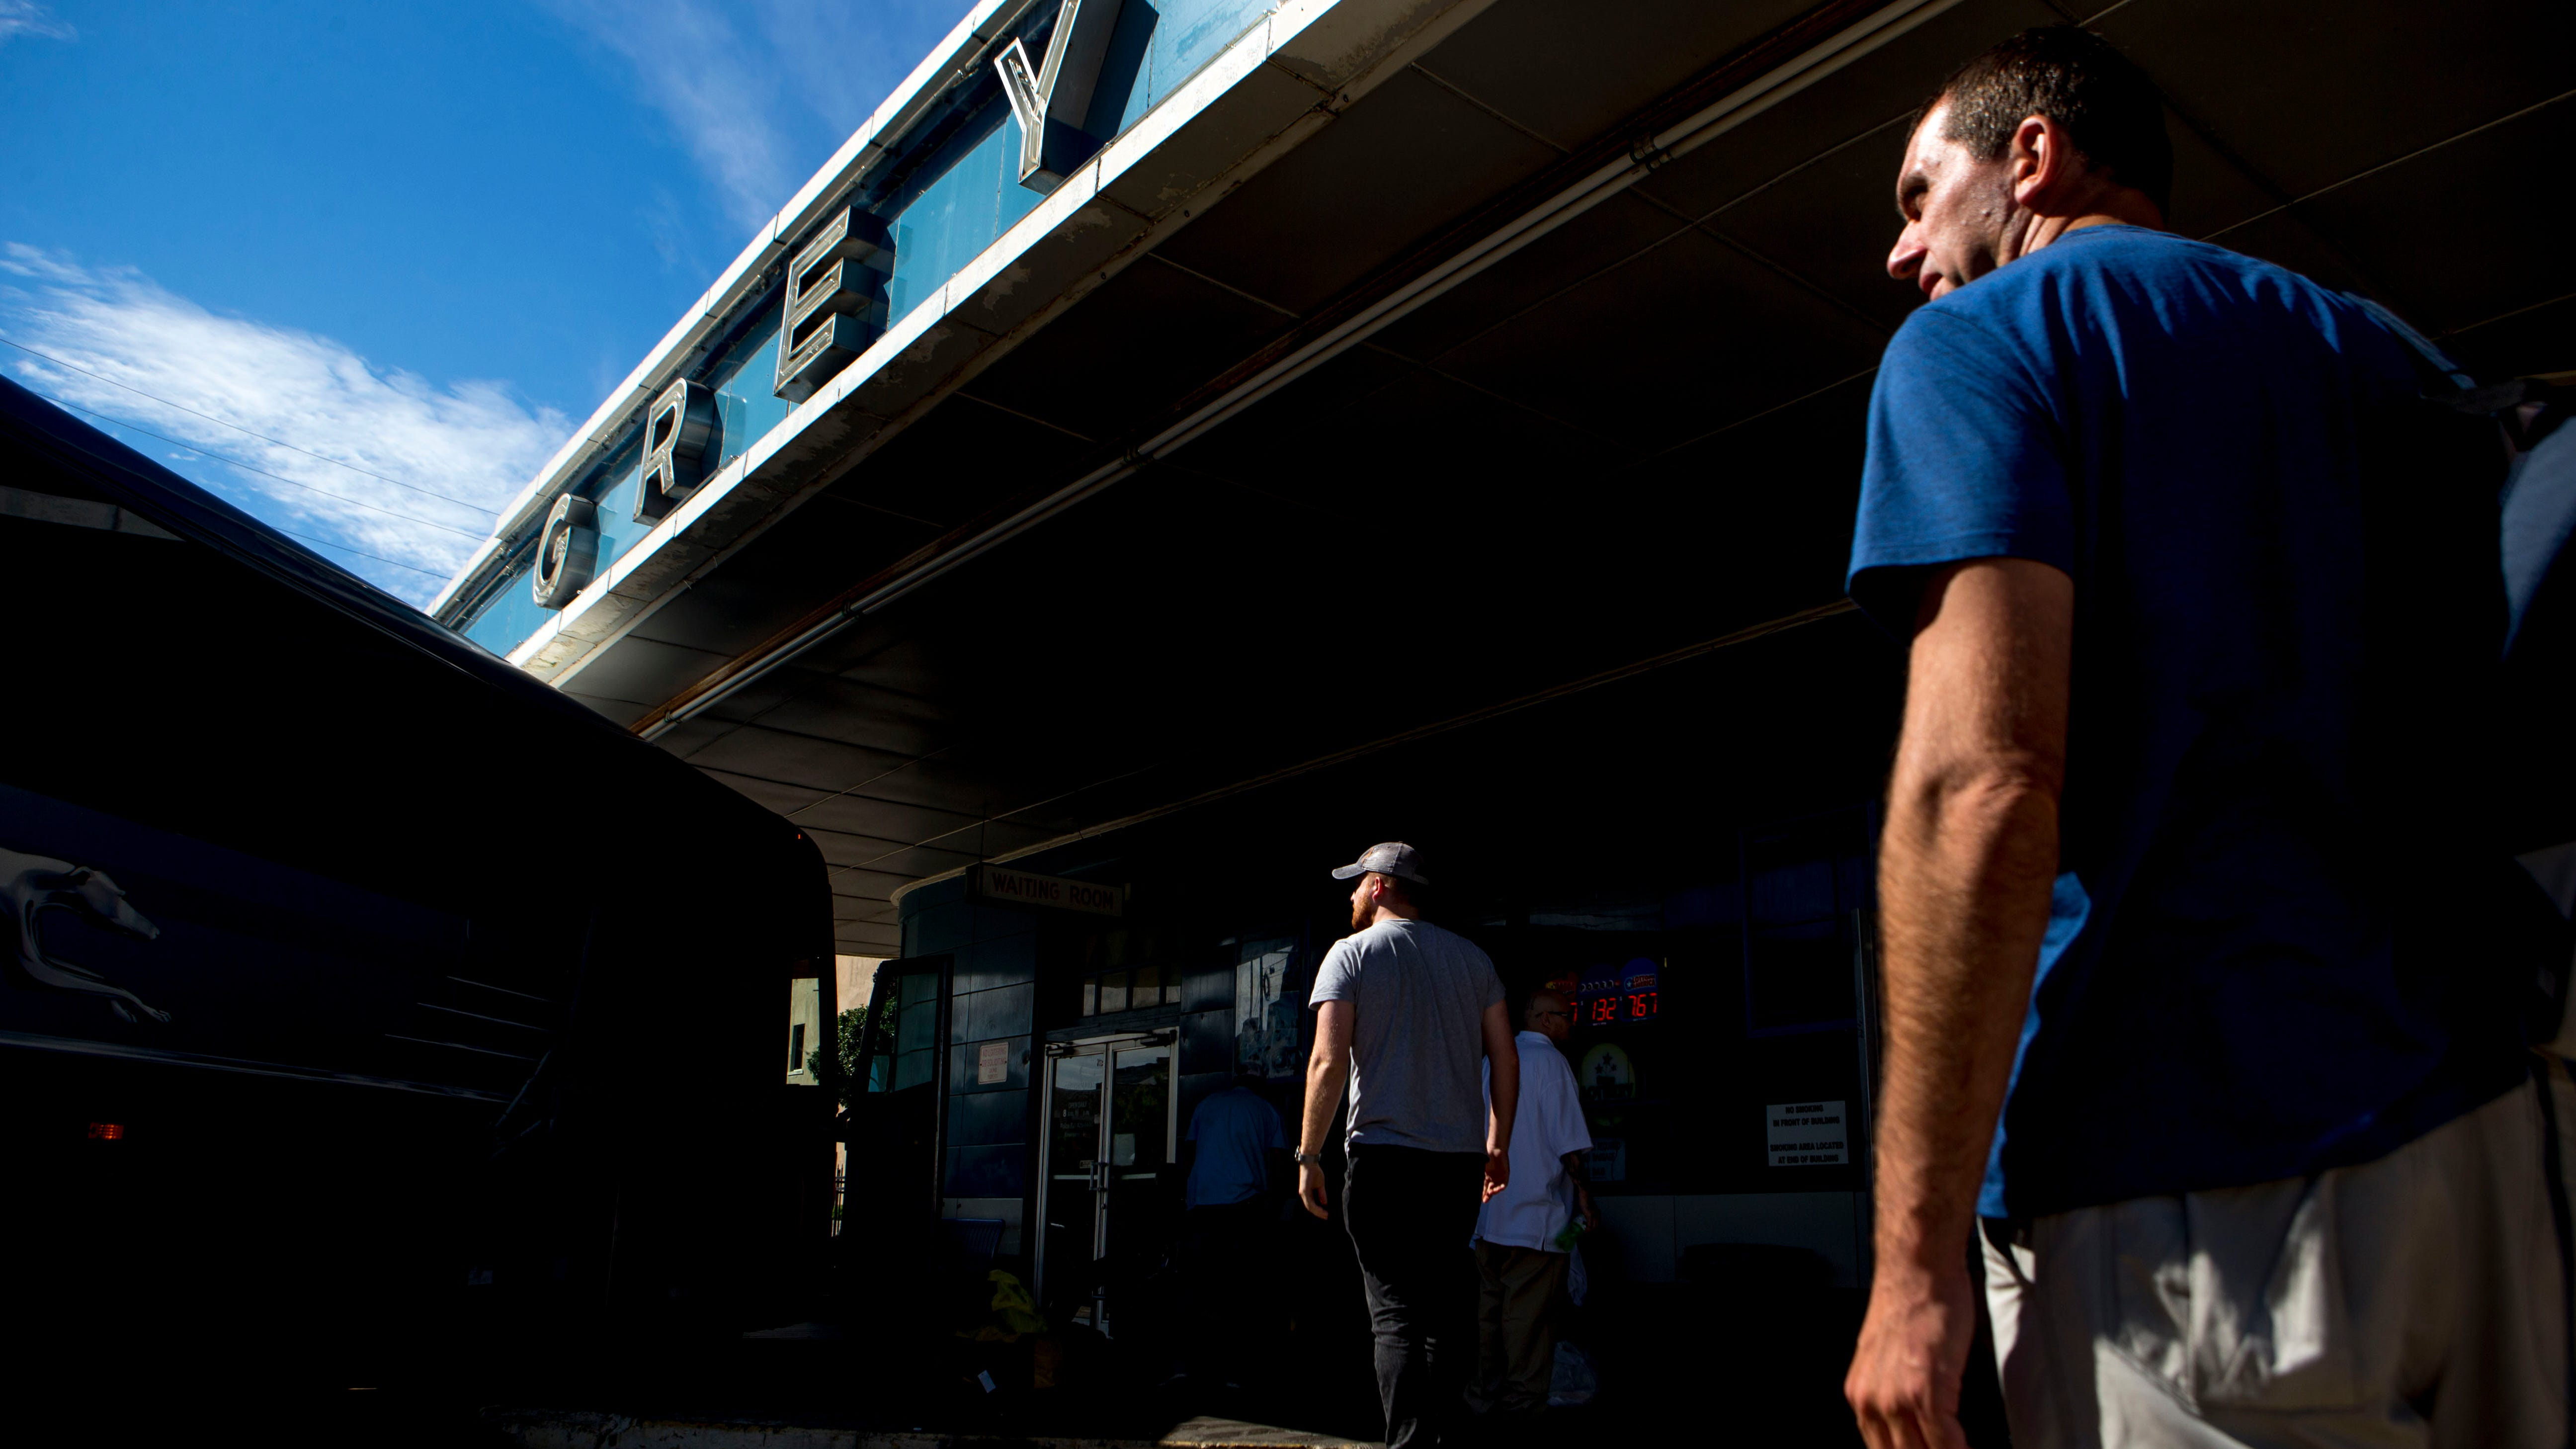 Riders mingle in between their bus and the terminal during a stop at the Greyhound Bus Station in Jackson, Tenn., on Wednesday, Sept. 12, 2018.